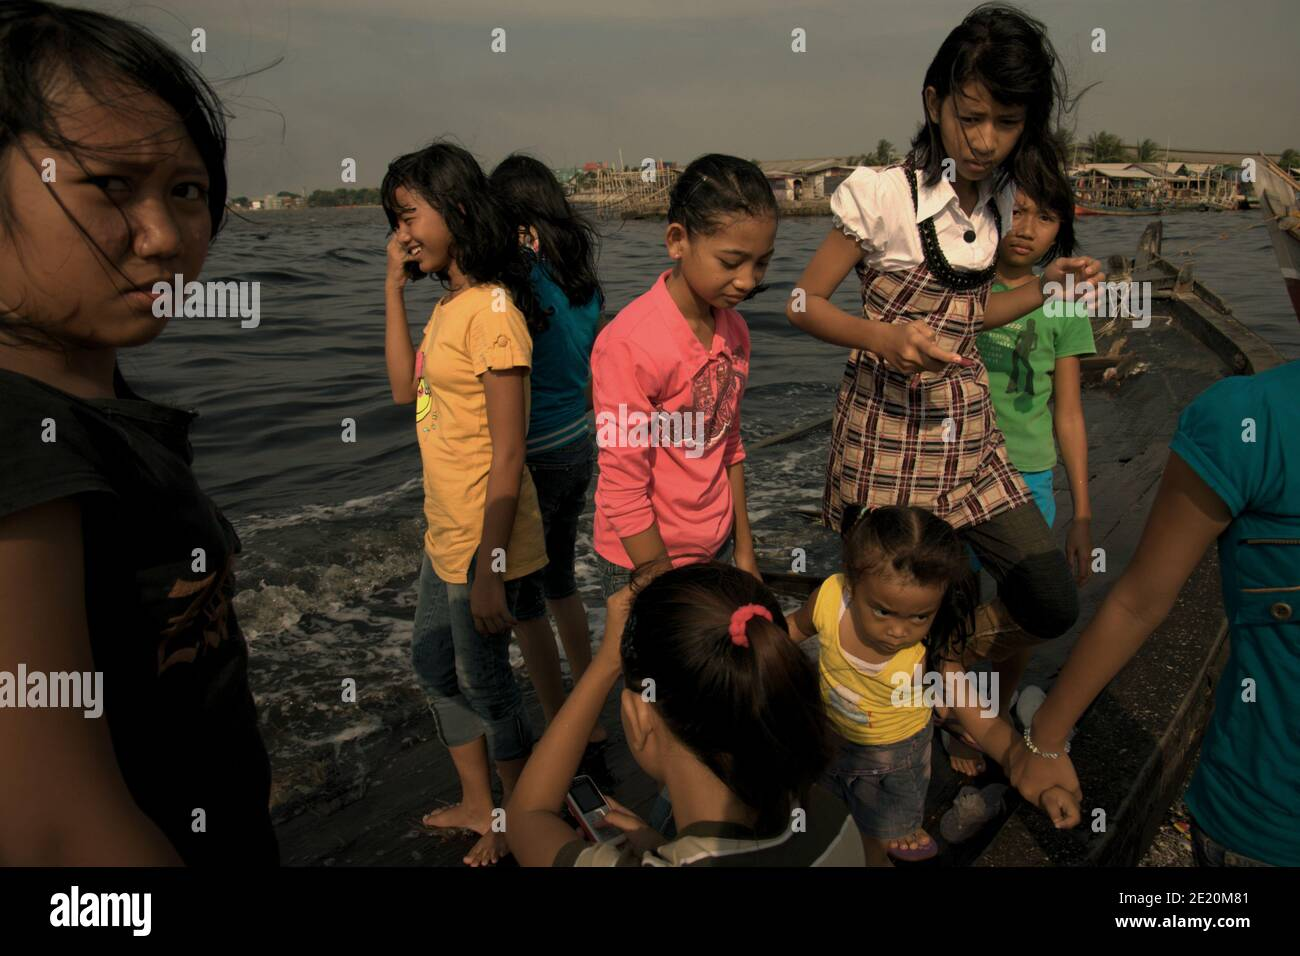 Teenagers having a leisure time on a broken boat tied to the beach in the fishing village of Cilincing, on the coastal area of Jakarta, Indonesia. Archival photo (2008). Stock Photo